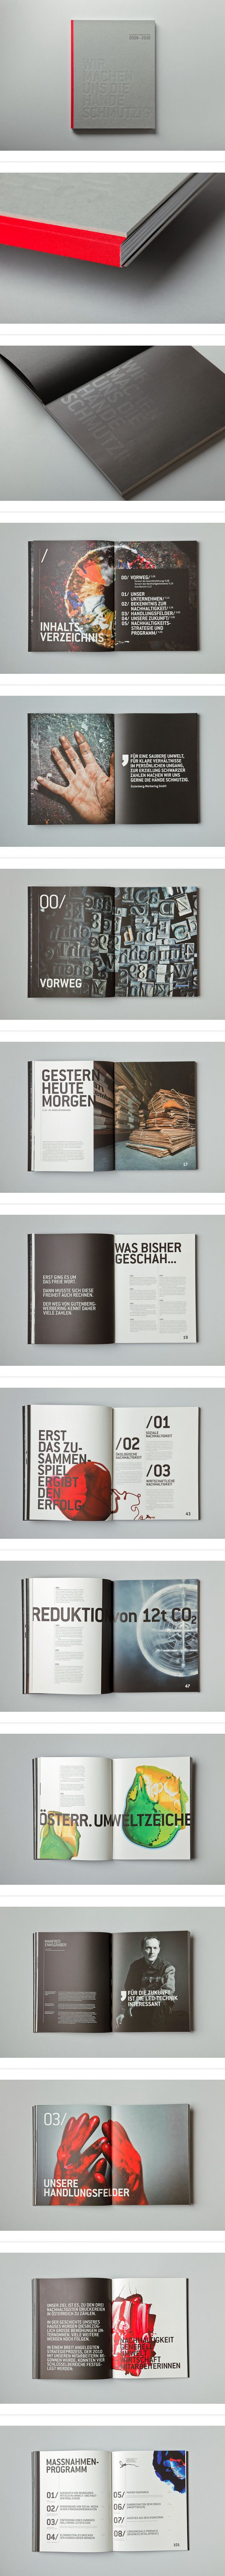 SUSTAINABILITY REPORT by Julian Weidenthaler